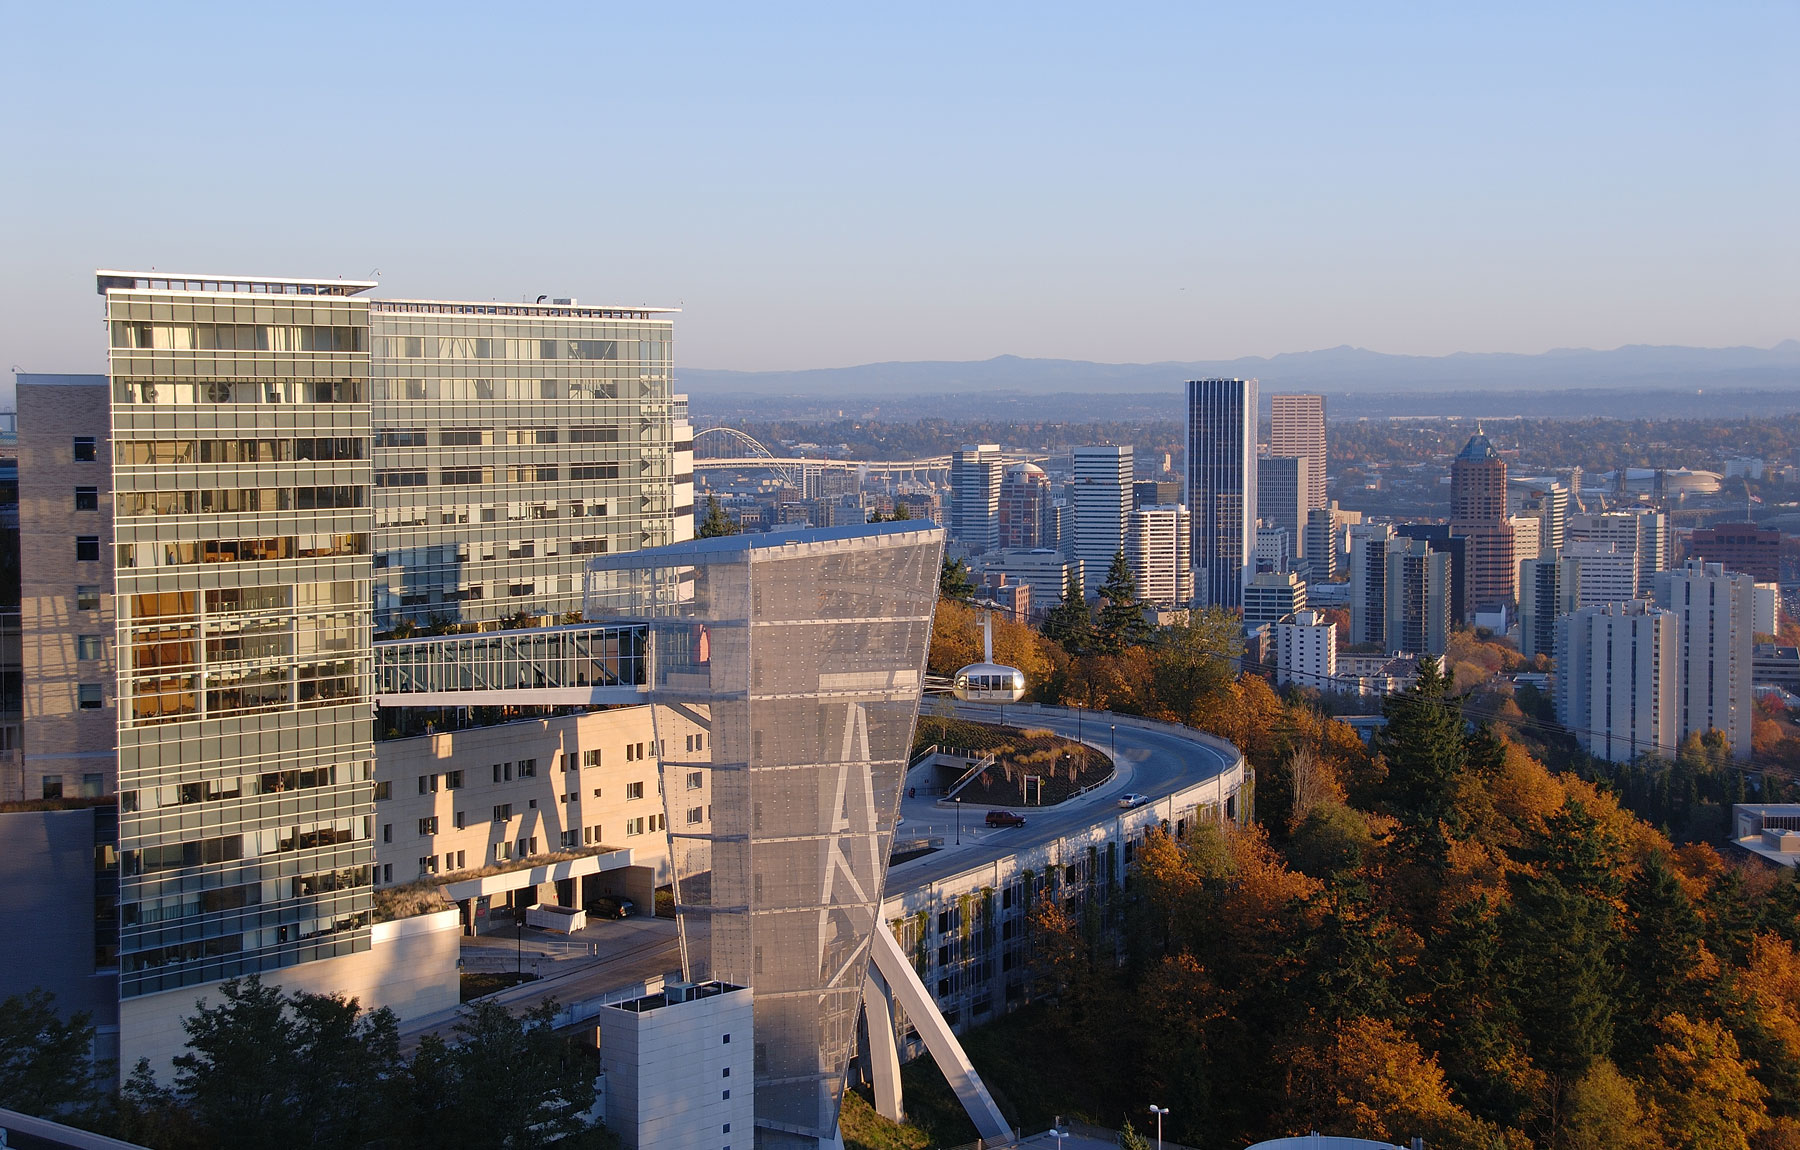 OHSU Kohler Pavilion and tram with city of Portland in the distance